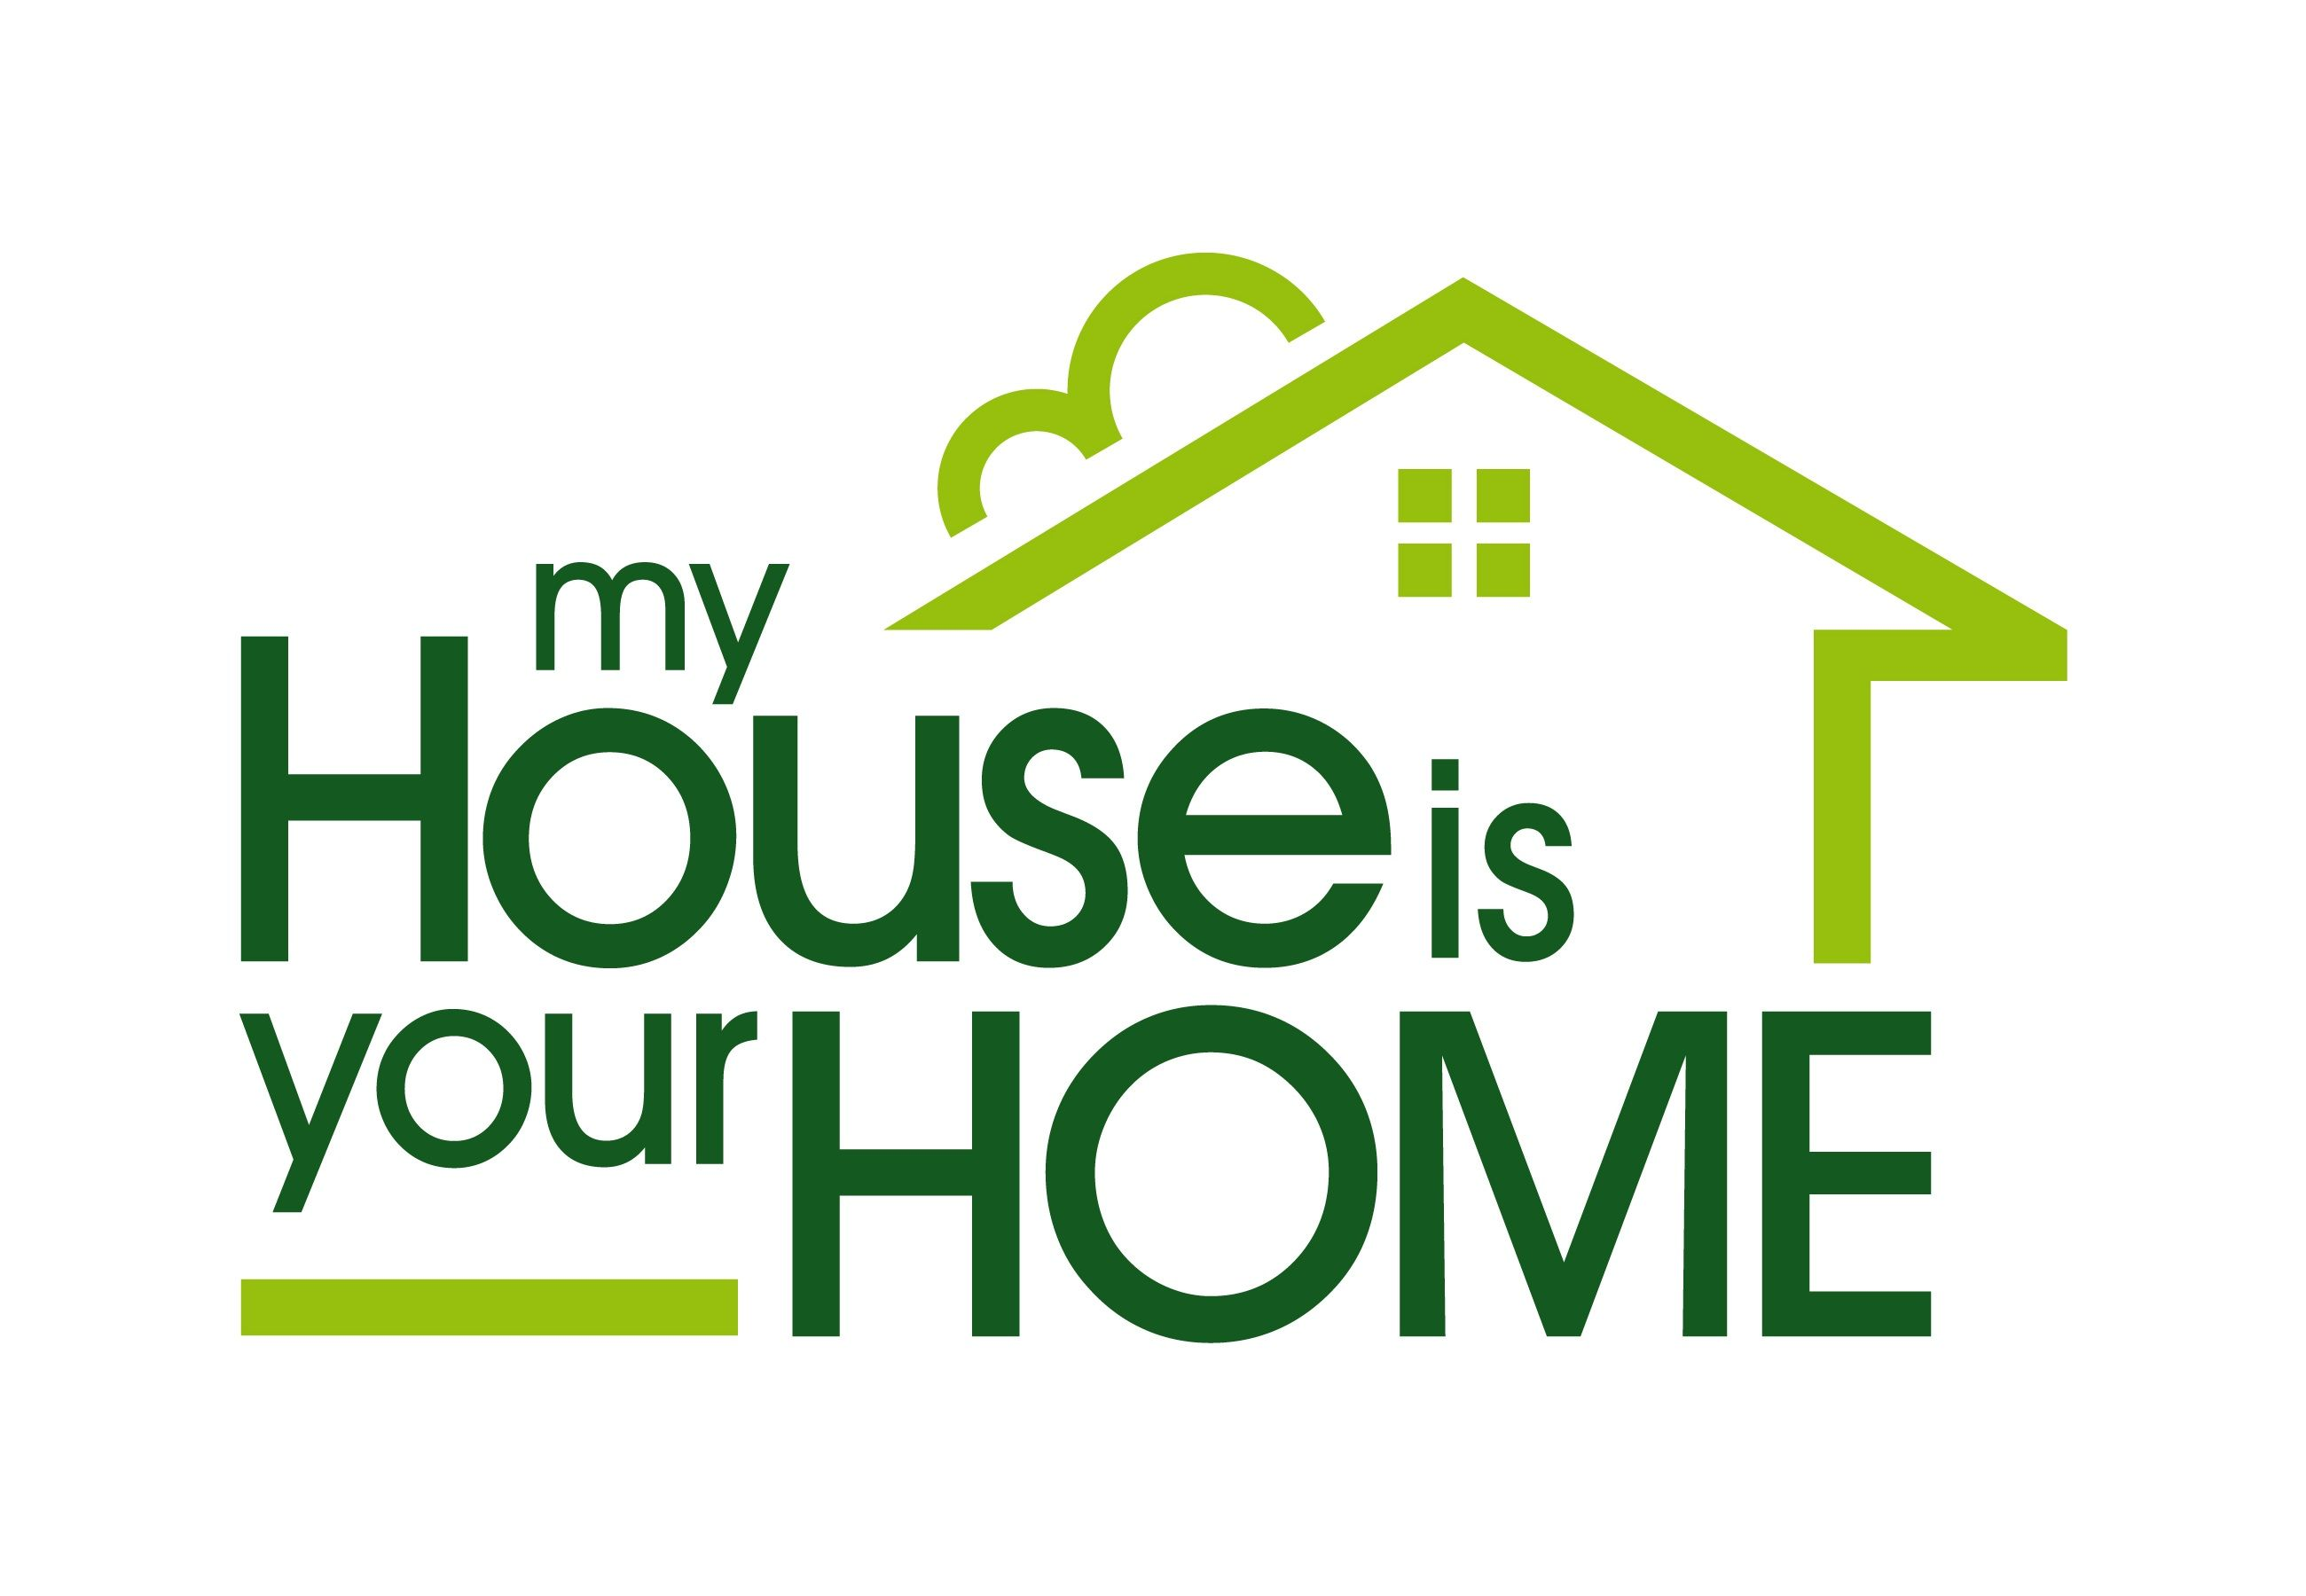 Pin by The Homes I Have Made on Branding & Logos | Home logo, Home